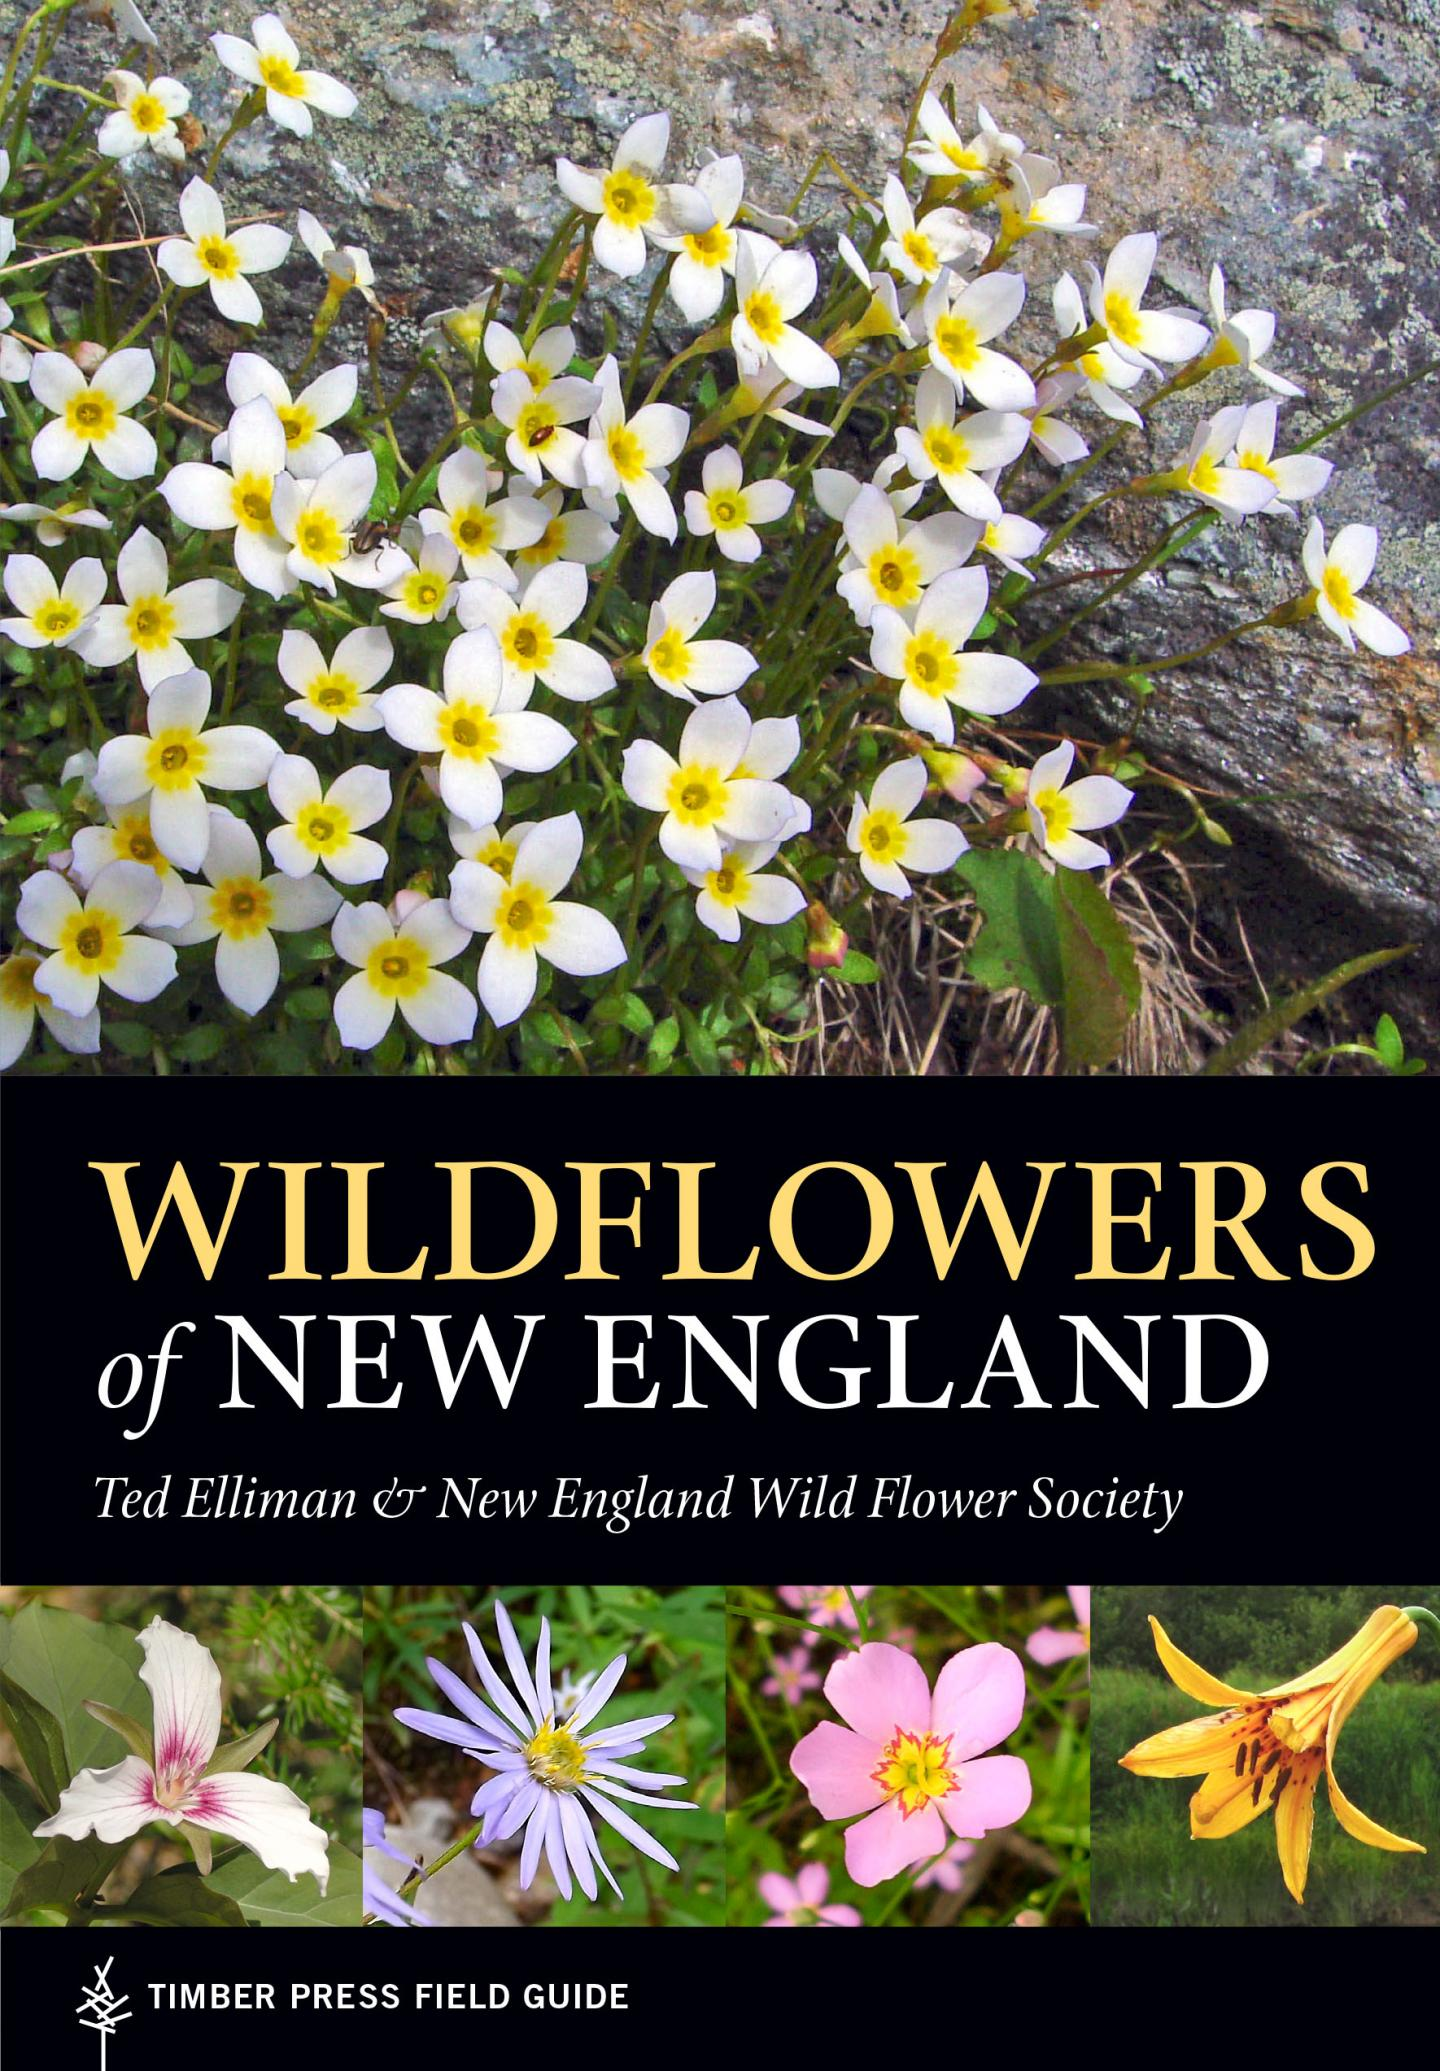 Comprehensive field guide to New England wild flowers is published ...